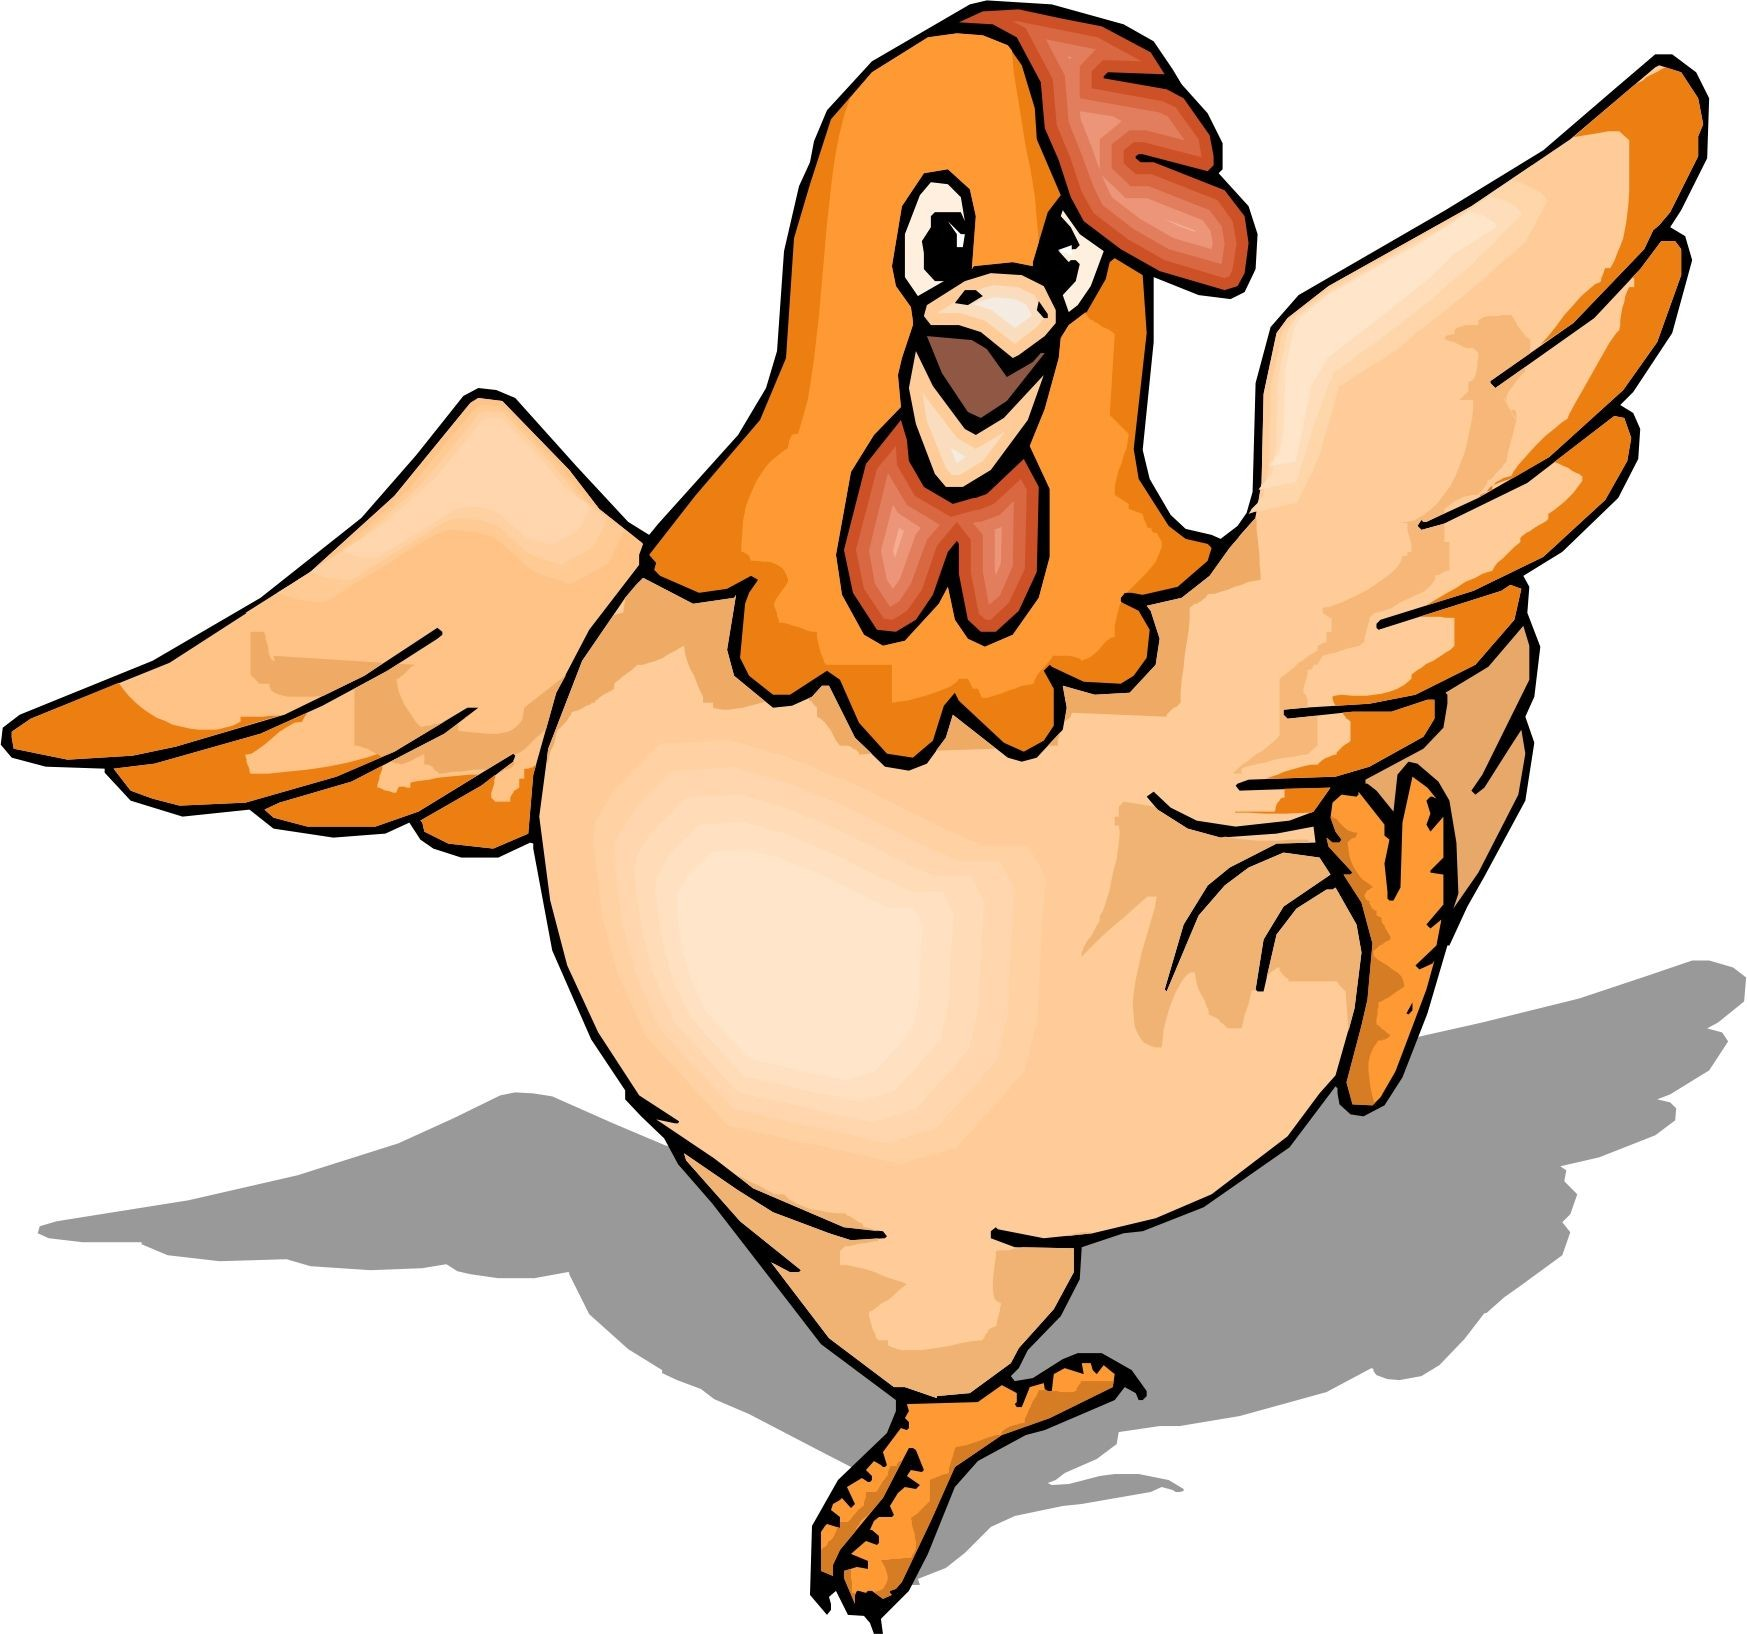 Chickens clipart chick. Coloring pages of a